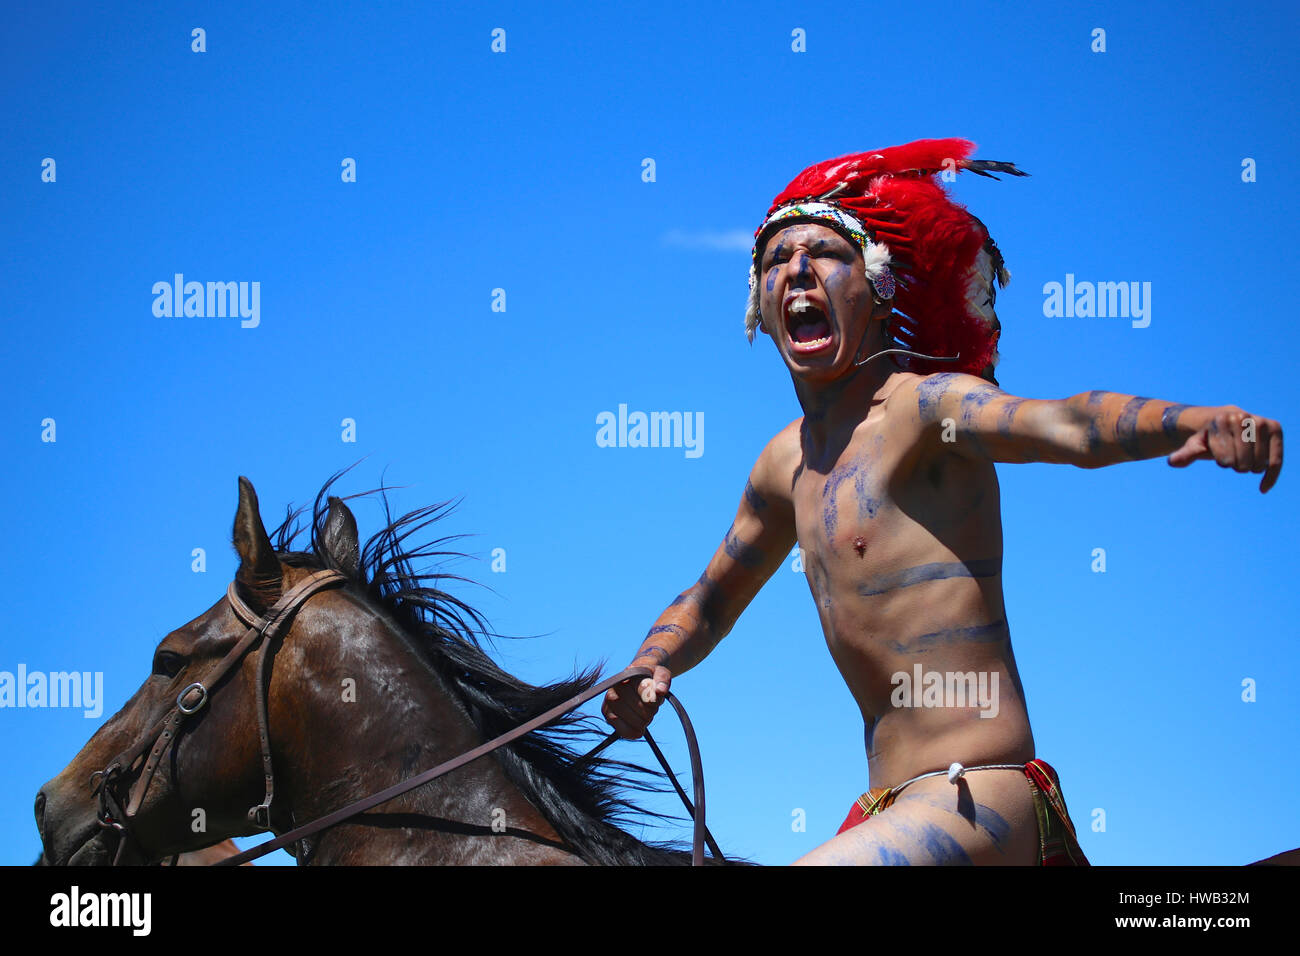 Native American Indian Wearing Blue War Paint And Wearing Red Feather Stock Photo Alamy